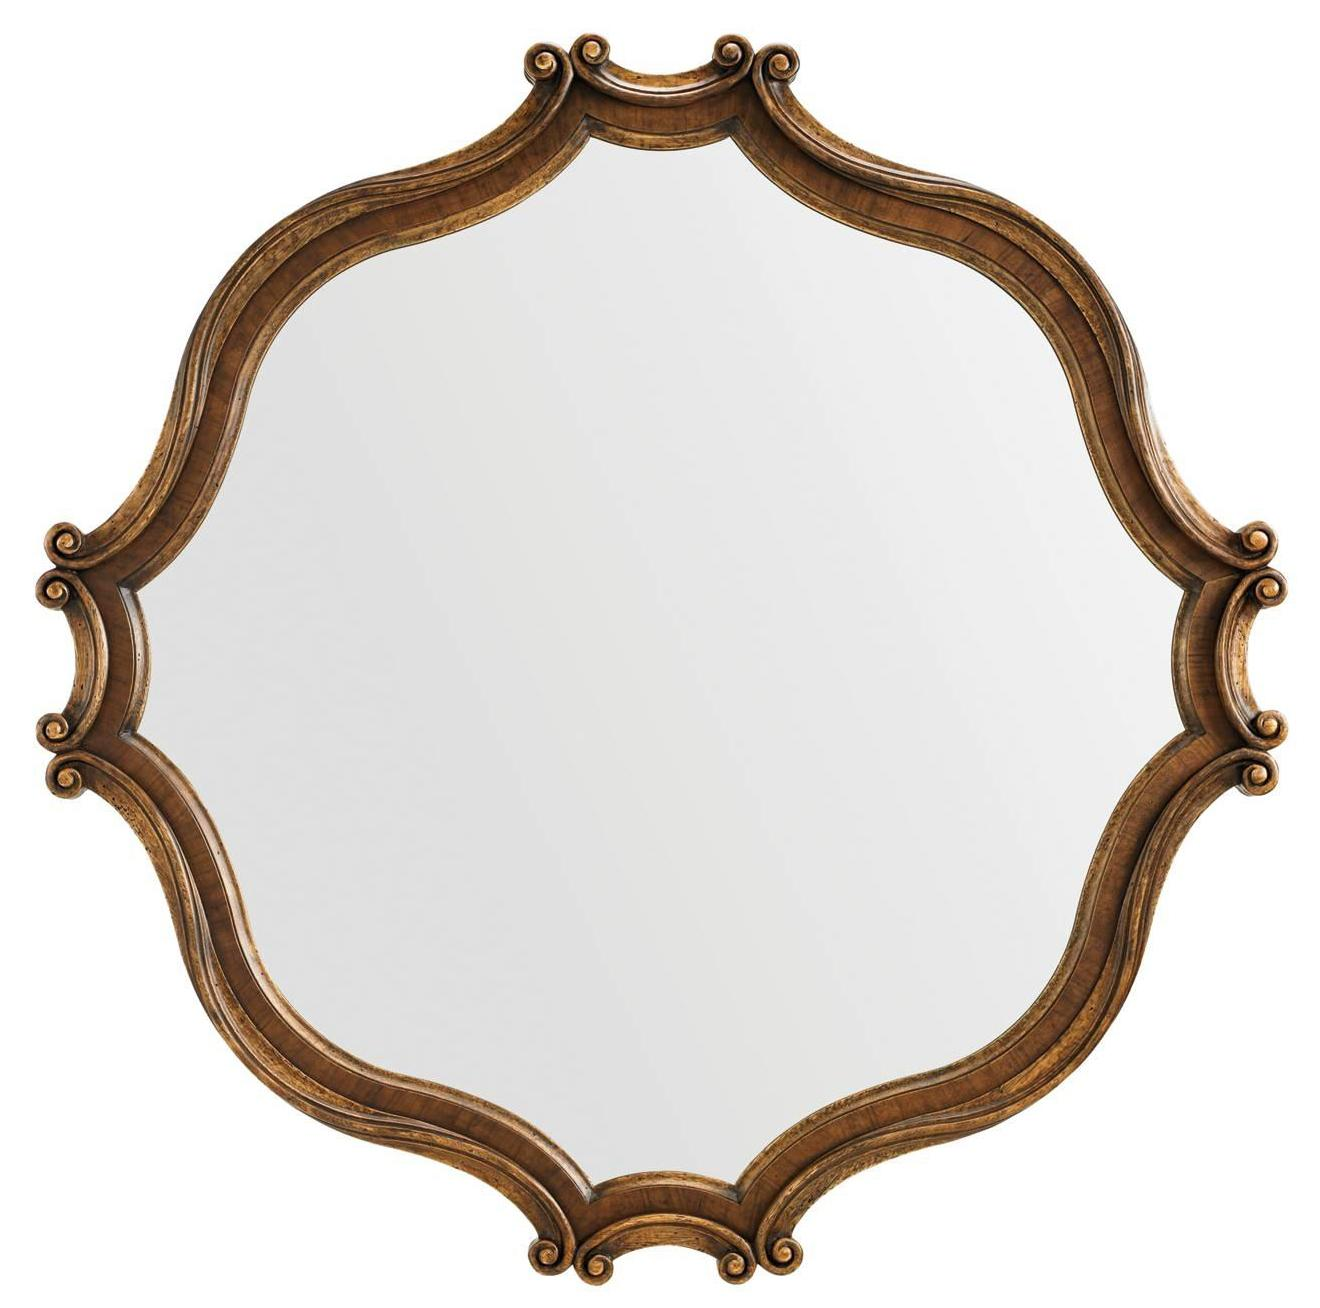 Stanley Furniture Villa Fiora Mirror - Item Number: 391-13-30